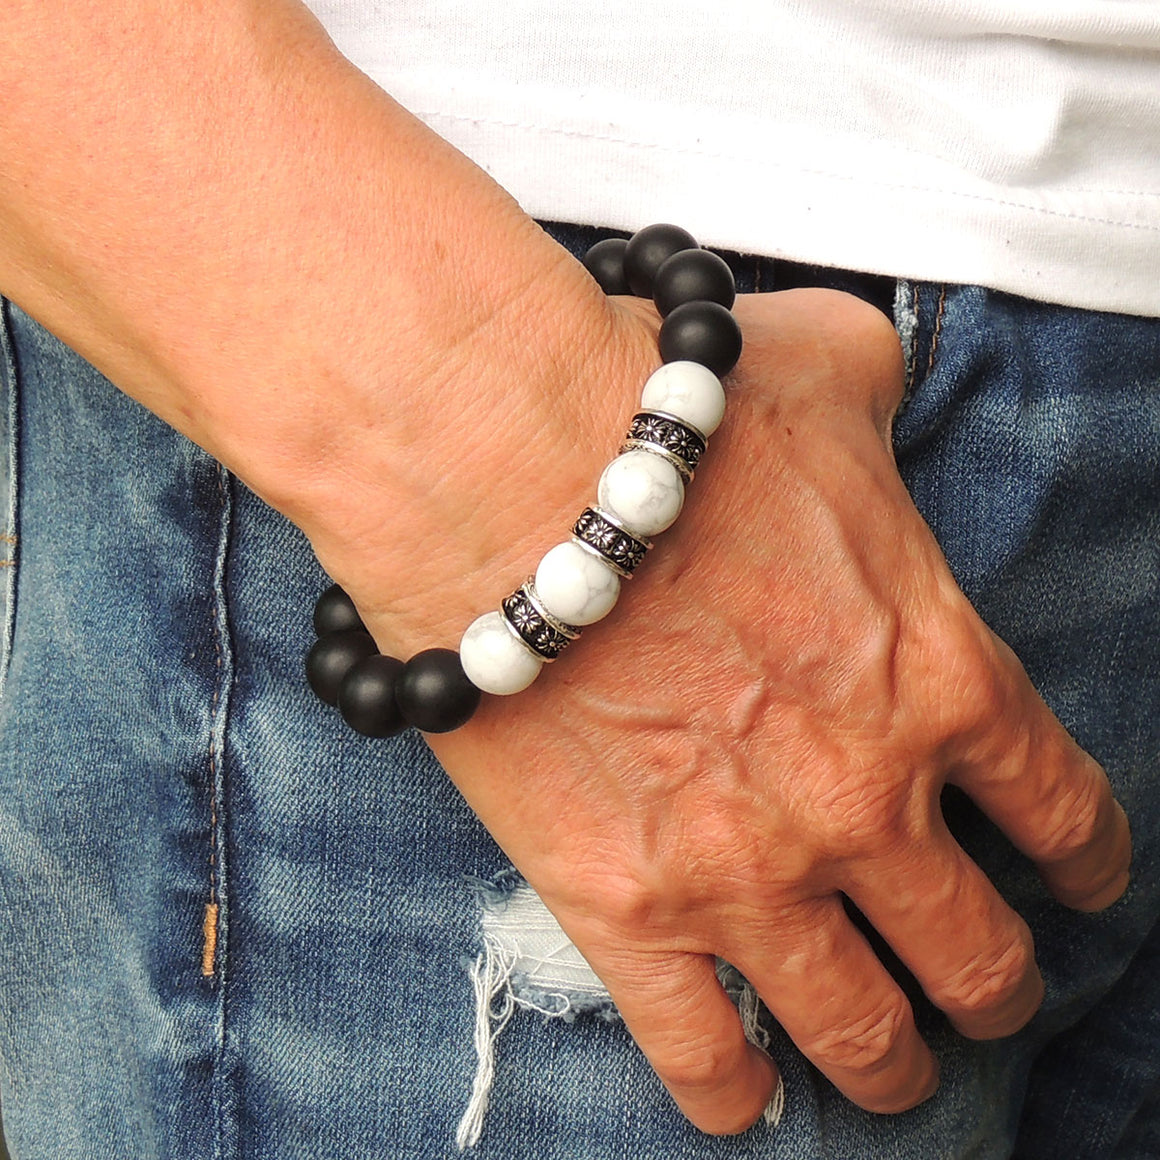 Cross Pattern Design Healing Gemstone Jewelry - Men's Women's Handmade Braided Charm Bracelet with 12mm Matte Black Onyx, White Howlite, Adjustable Drawstring, S925 Sterling Silver BR1764